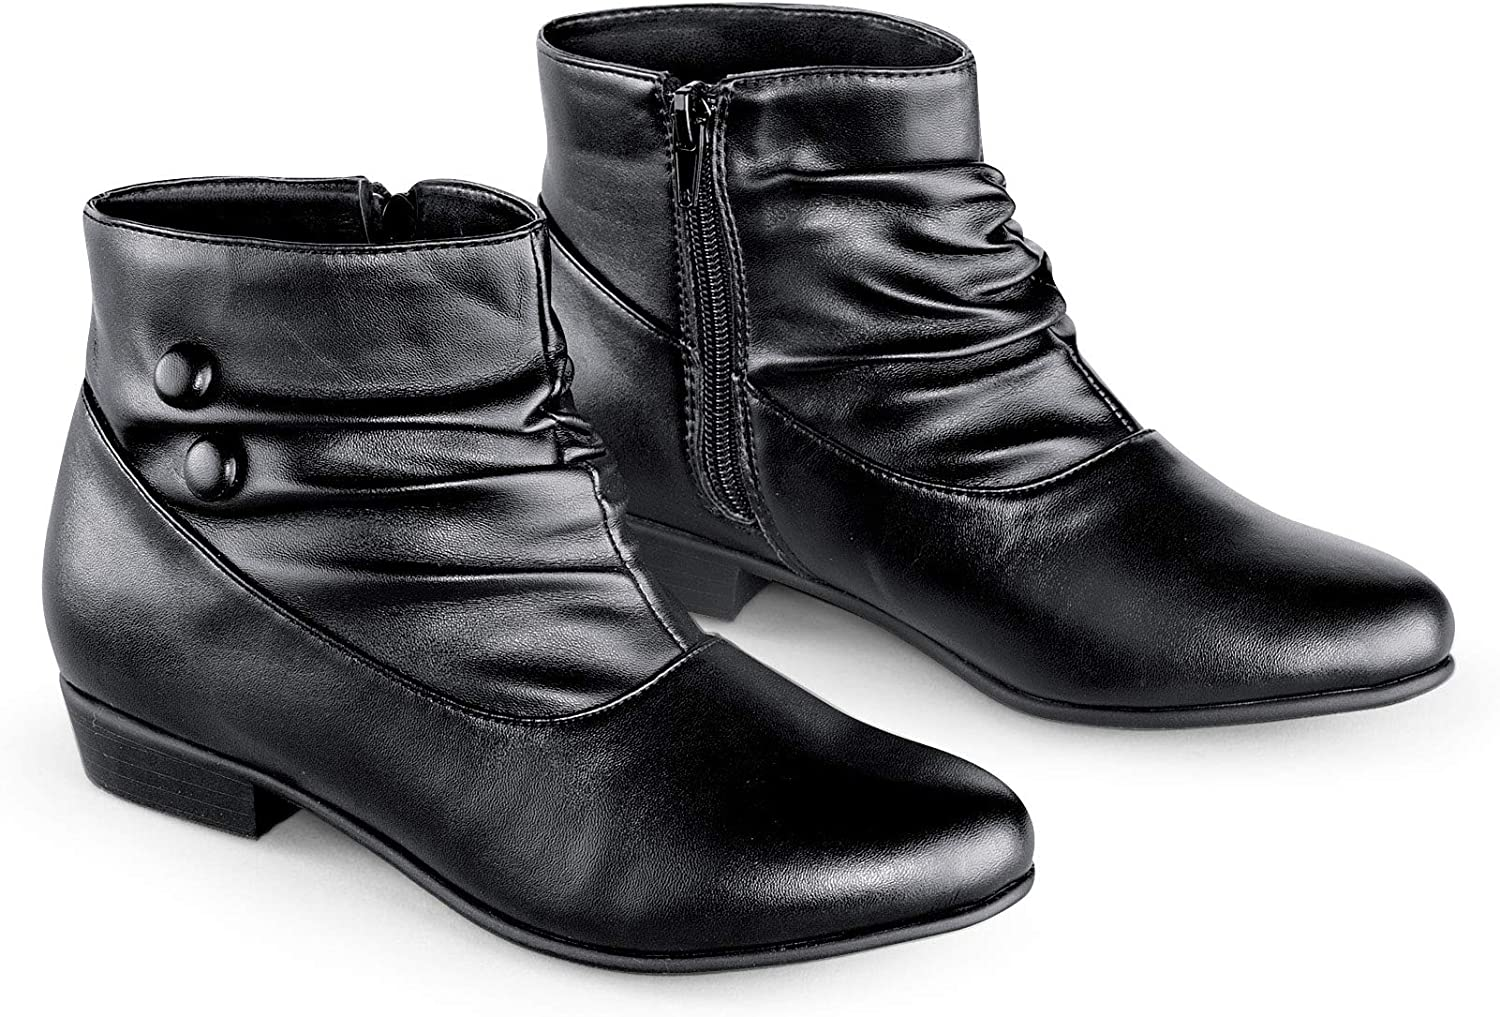 Collections Etc Women's Button Ankle Slouch Boots w/Low Heel Black 11